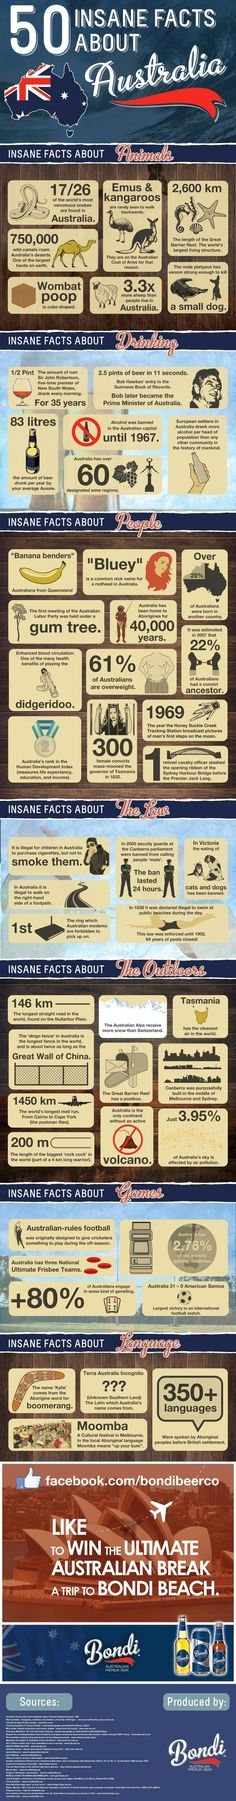 50 Insane Facts About Australia - Travel Infographic. Statistics, geography, Australian culture, country history. #AmIInsane?